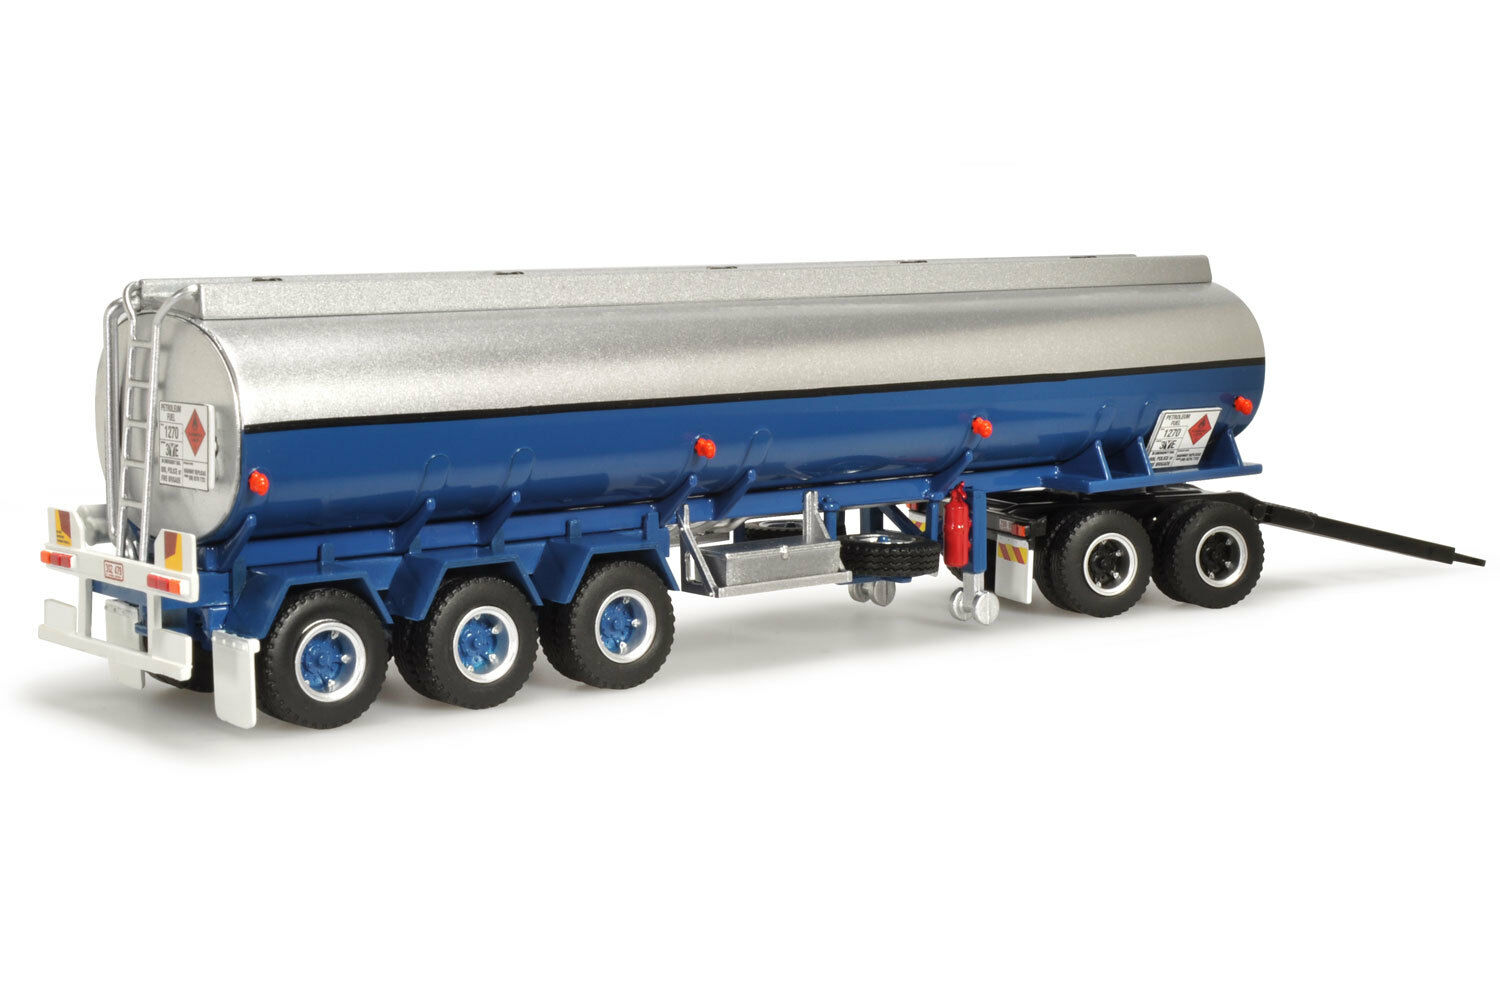 Highway Replicas 1 64 scale Tanker Trailer with Dolly (blu with stripes)